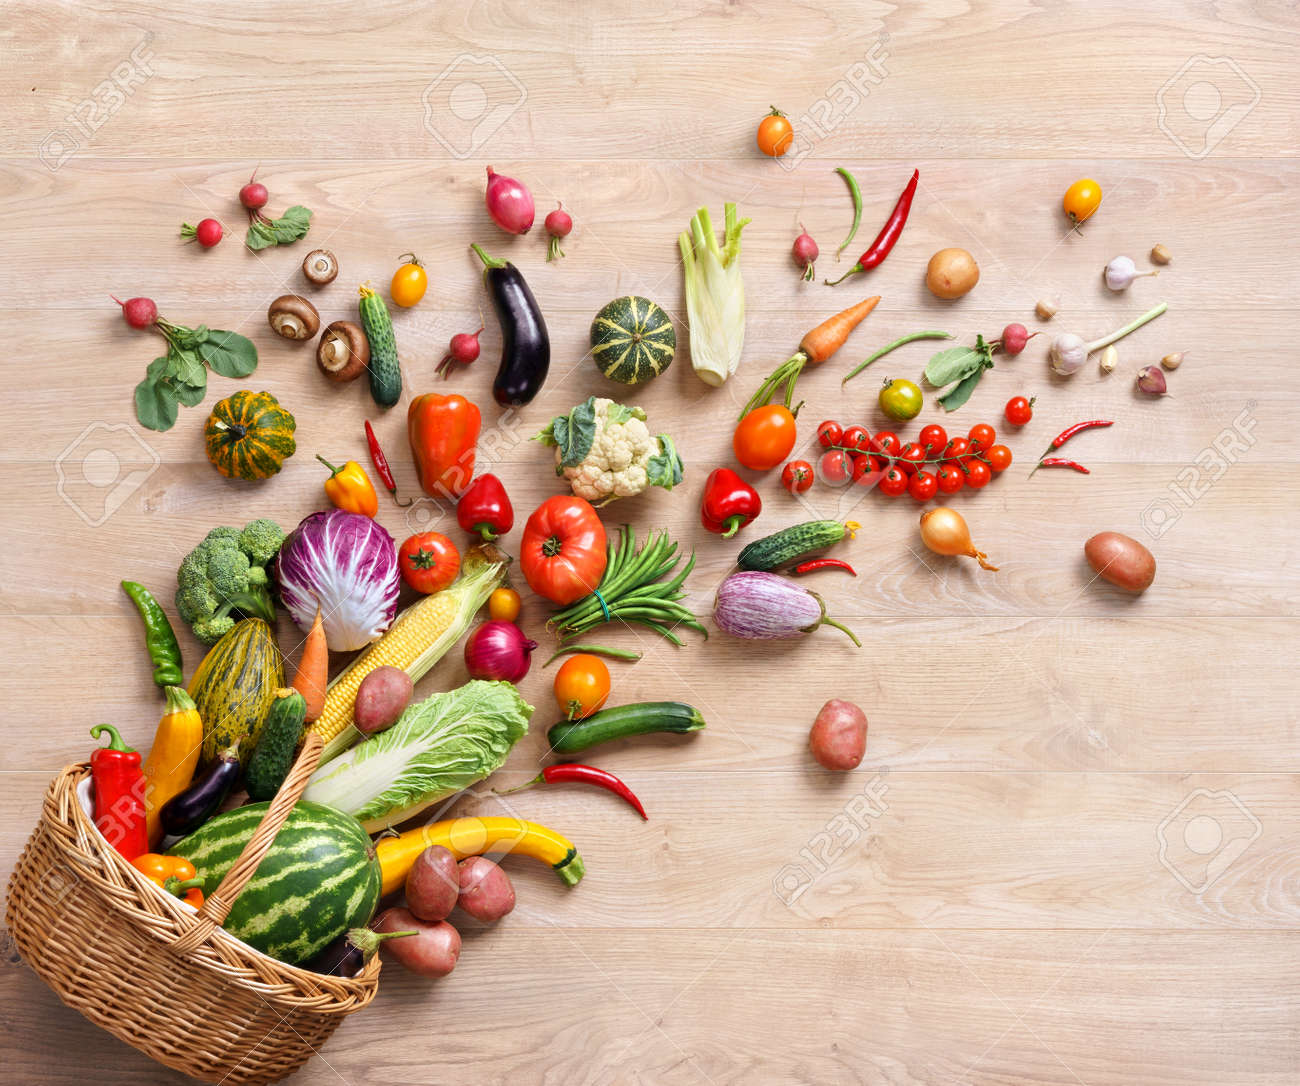 Image result for healthy food photography